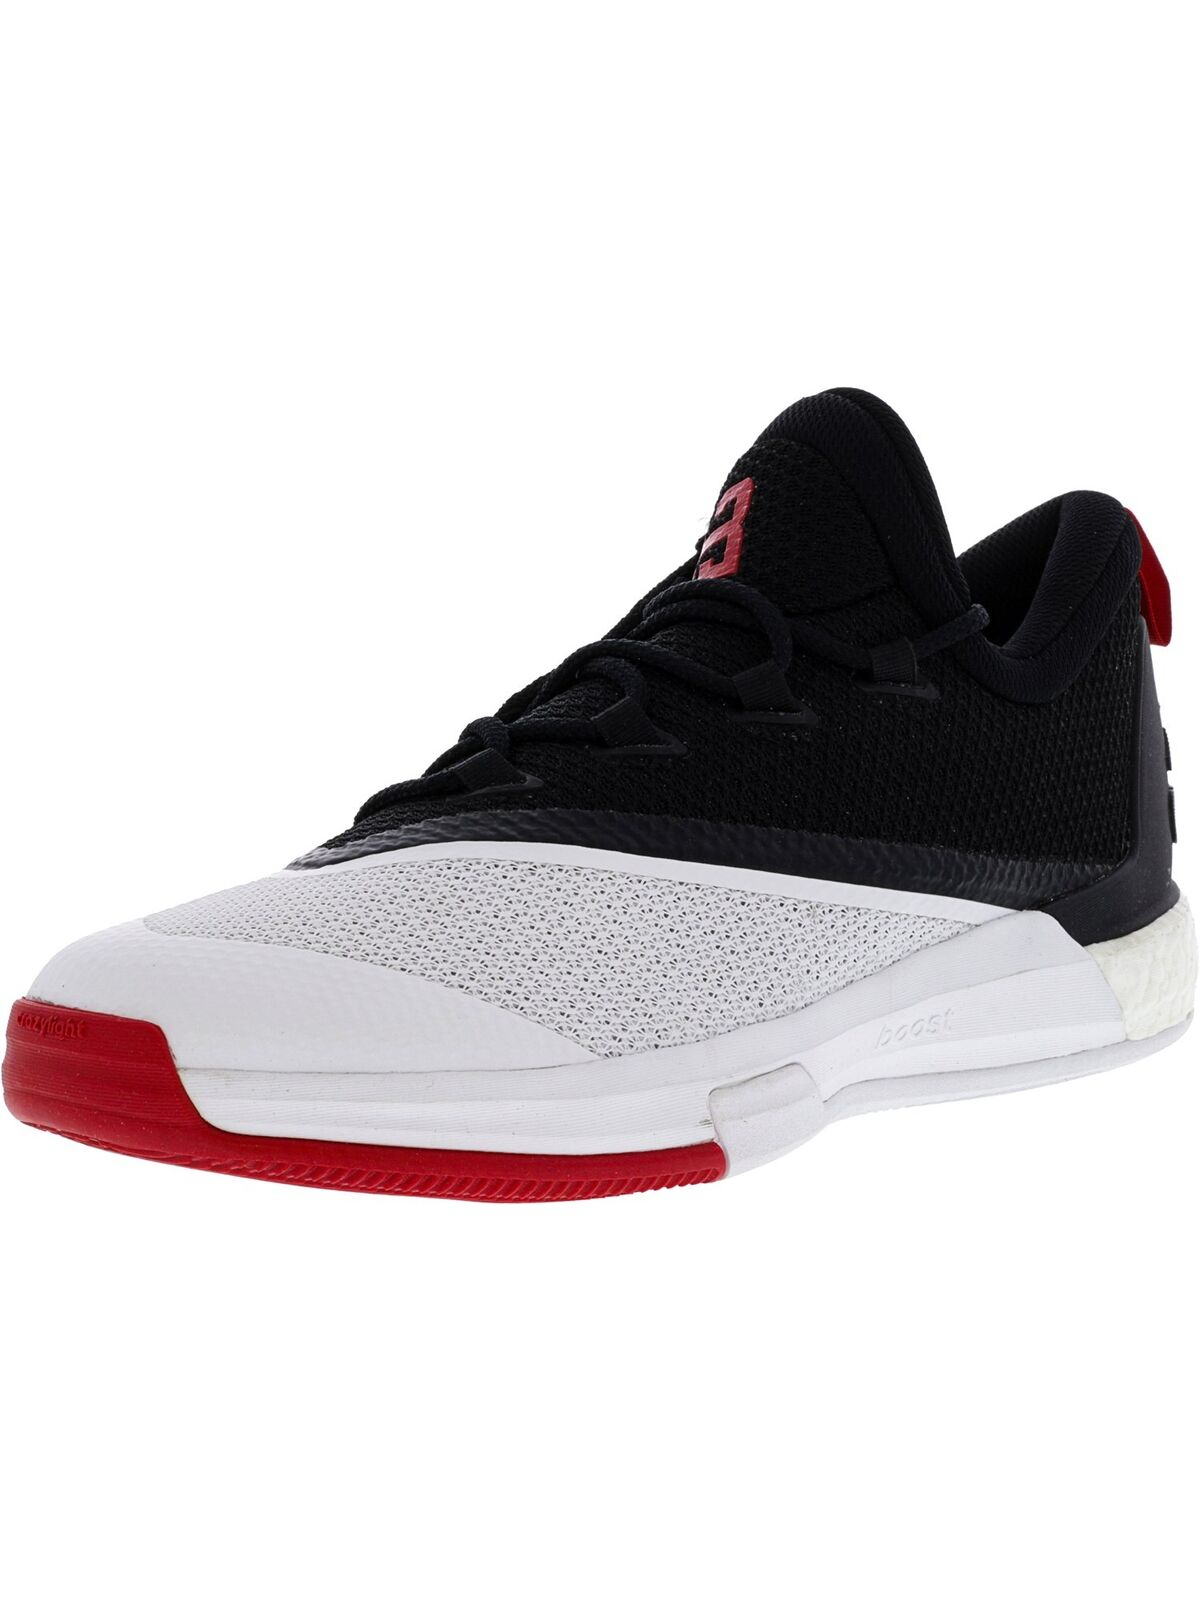 Adidas Men's Crazylight Boost 2.5 Ankle-High Basketball shoes